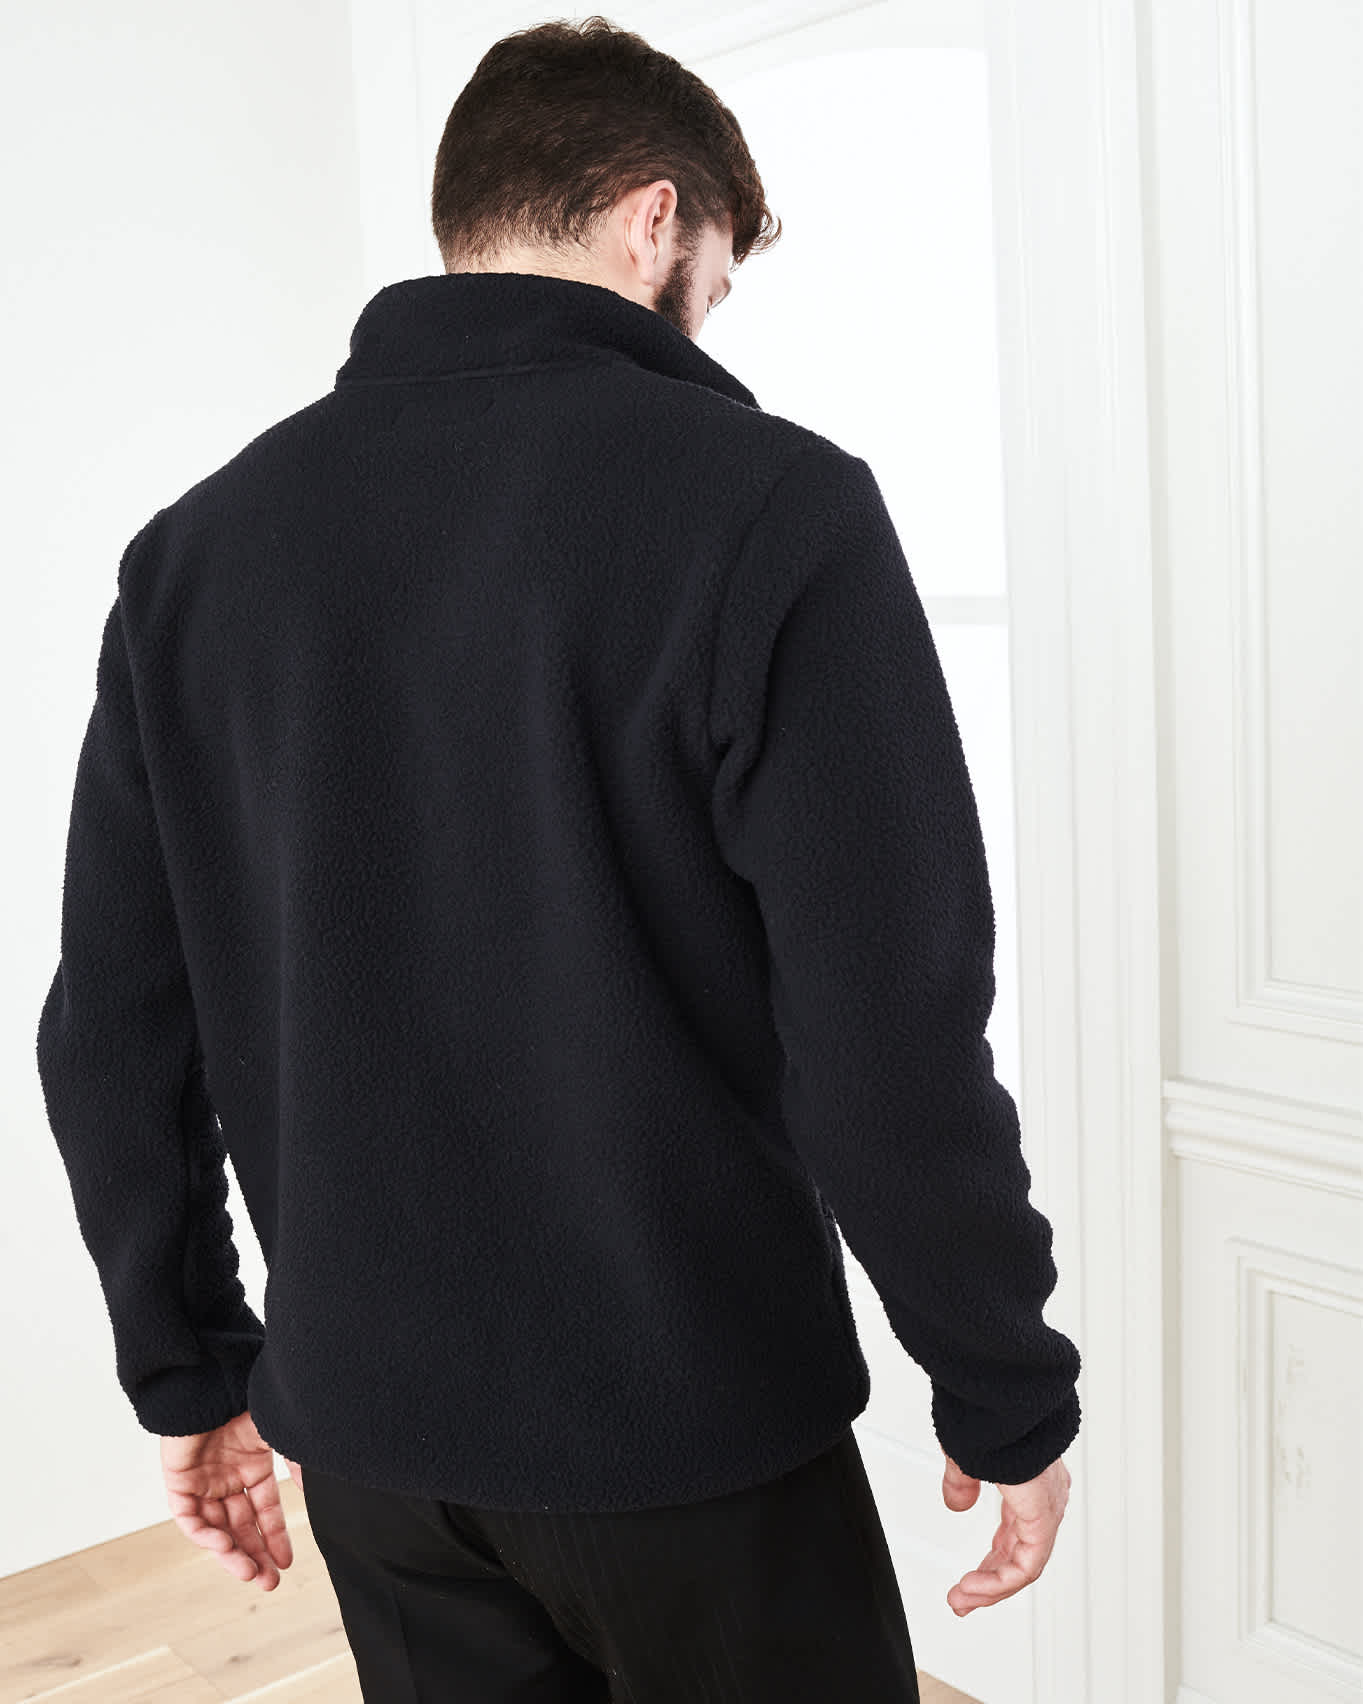 Recycled Sherpa Fleece Pullover Jacket - Black - 3